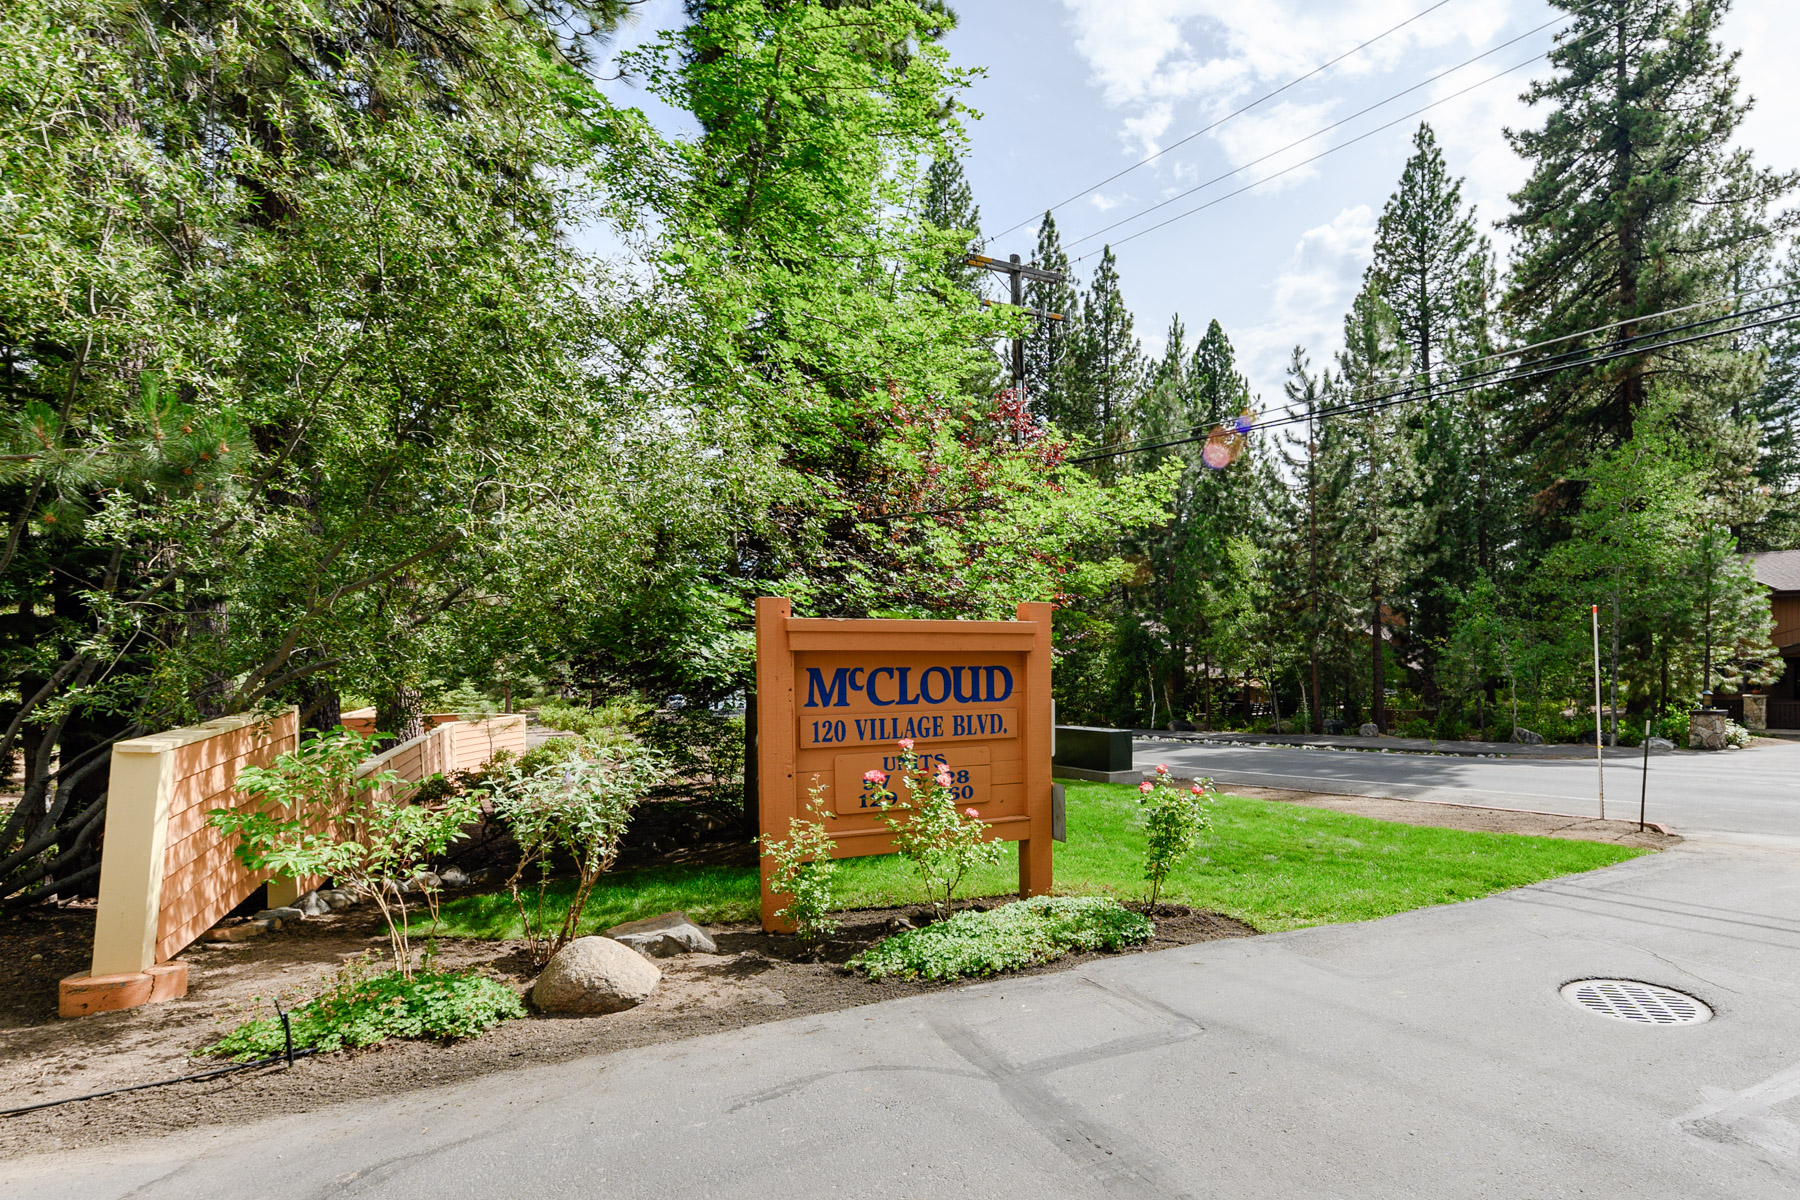 Additional photo for property listing at 120 Village Blvd. #128, Incline Village, NV 120 Village Blvd. #128 Incline Village, Nevada 89451 United States